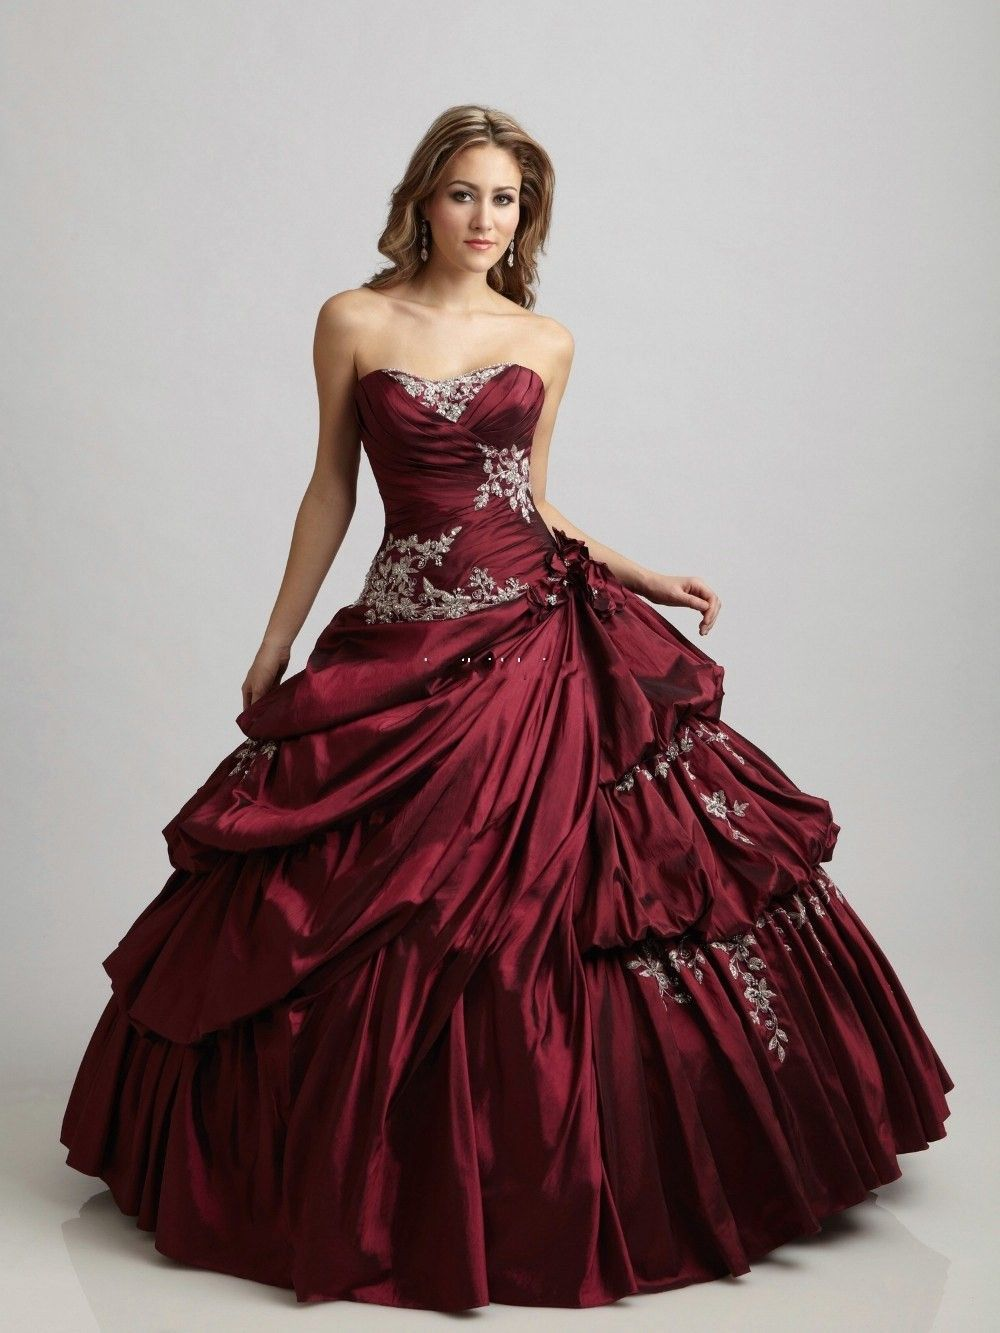 Find More Wedding Dresses Information about Cecelle 2016 Vintage Gothic  Burgundy Royal Blue Ball Gown Wedding Dresses Sweetheart Corset Princess  Quinceanera ... bdb56f6b9299